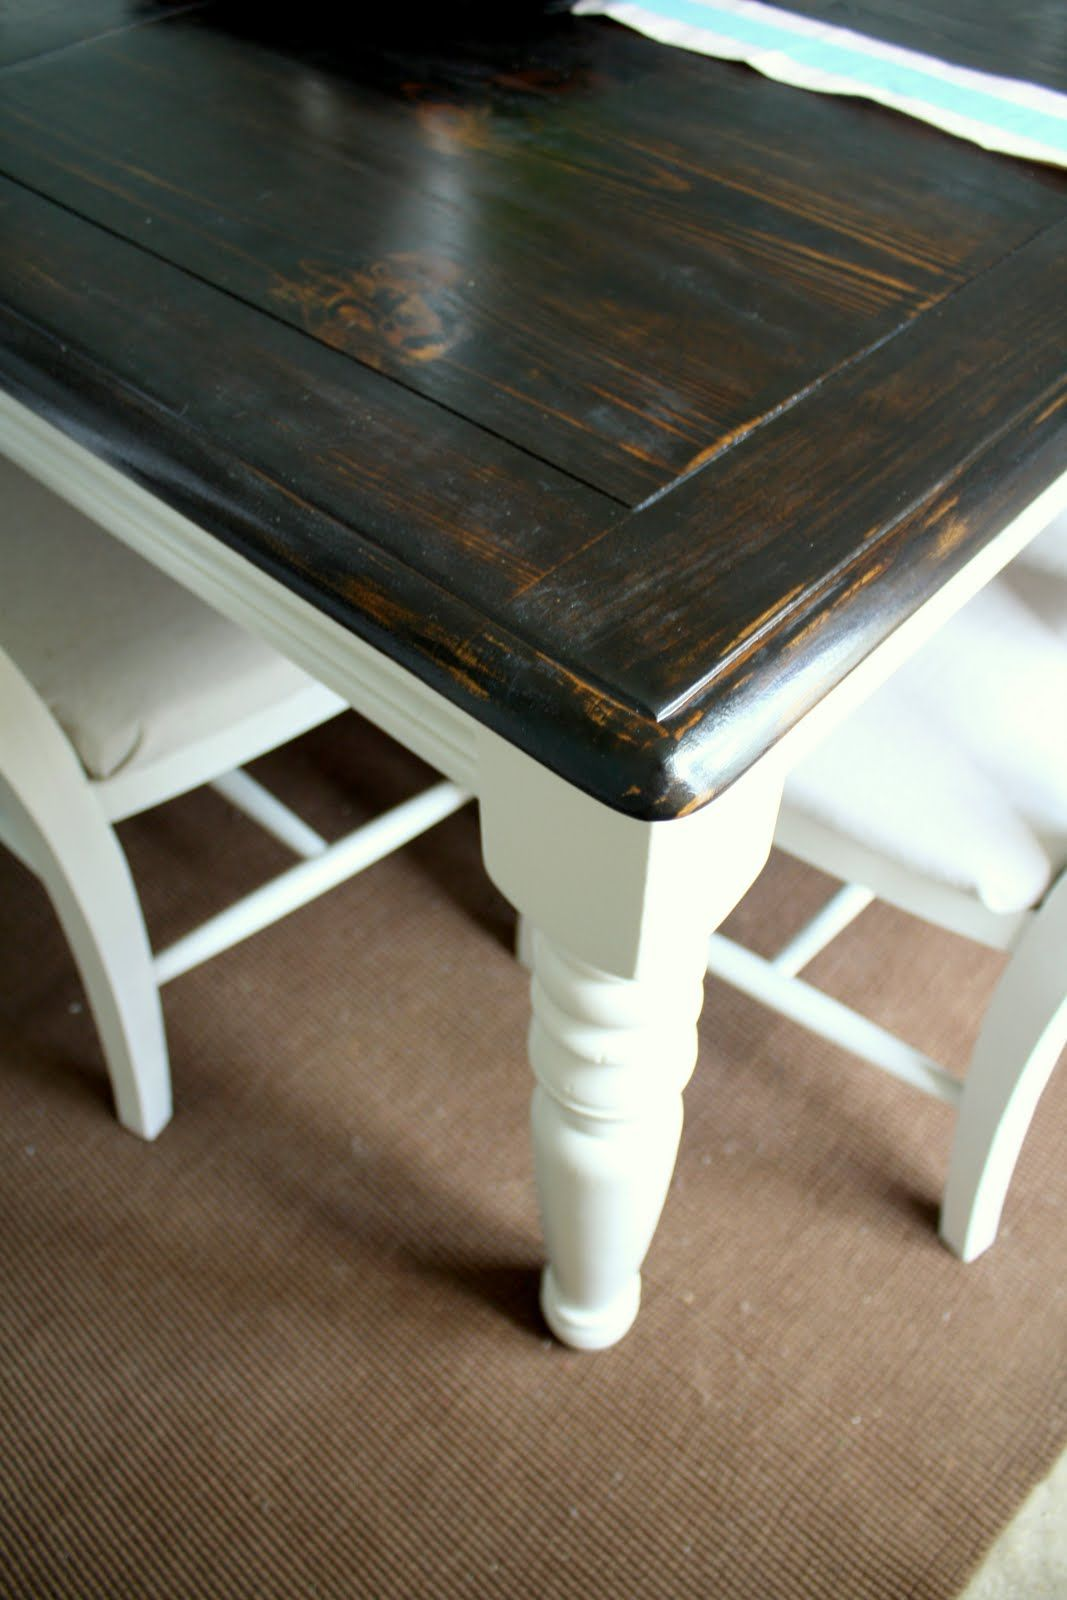 Pin by Hilary Dotson on Furniture Refurbishing & Crafts ... Refinish Kitchen Table Ideas on refinished coffee table ideas, refinishing wood furniture ideas, unique kitchen table painting ideas, staining dining table ideas, dining room table refinishing ideas, repurposed furniture ideas, black dining table refinishing ideas, french coffee table redo ideas, staining kitchen table refinishing ideas, painted table ideas, painting kitchen chairs ideas,